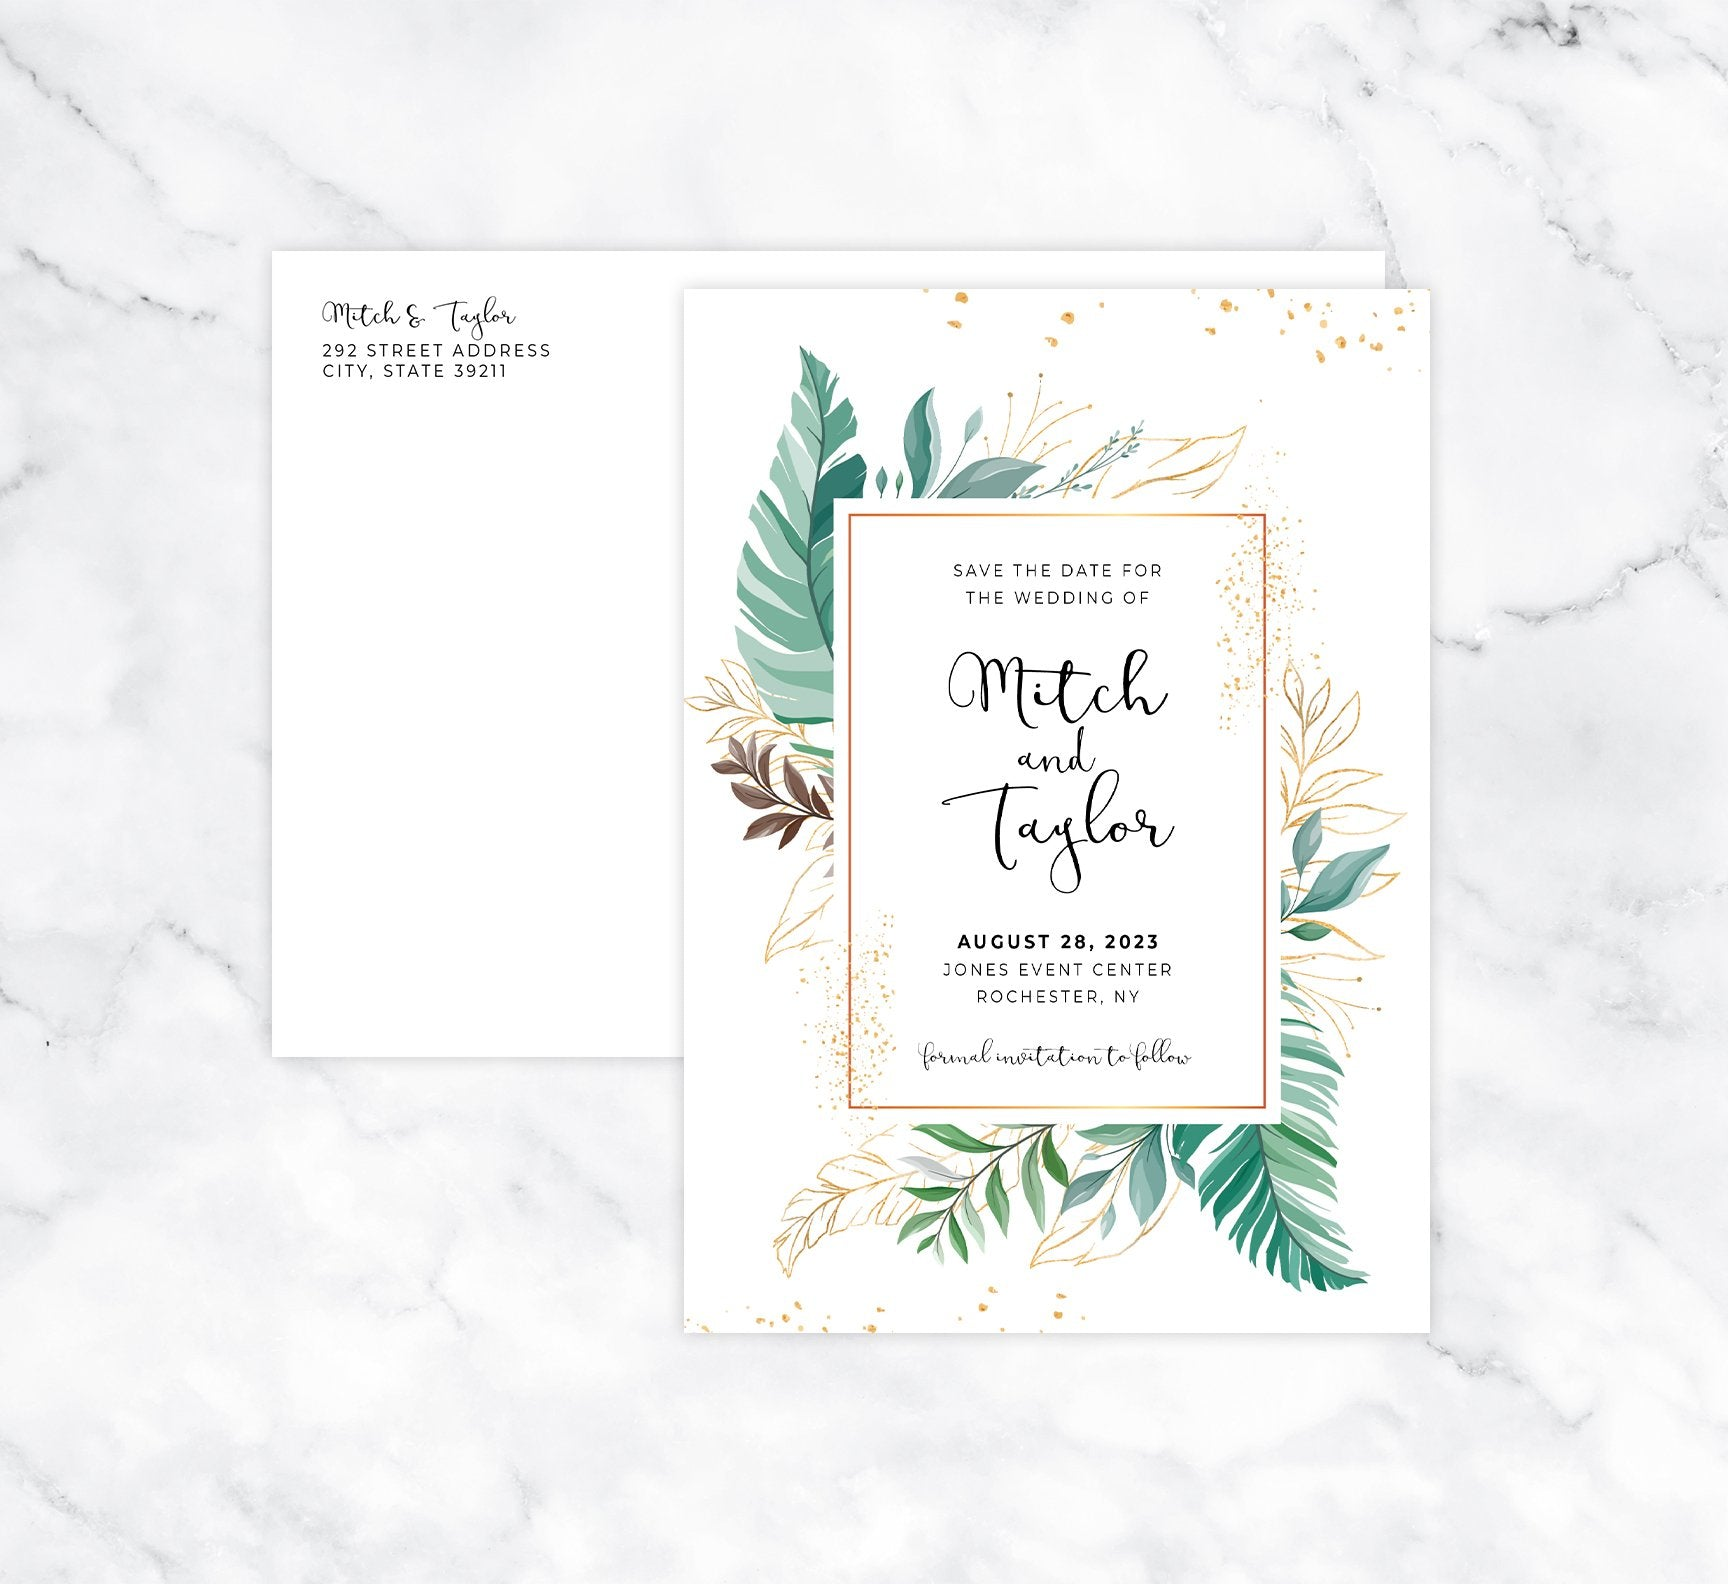 Greenery Frame Save the Date Card Mockup